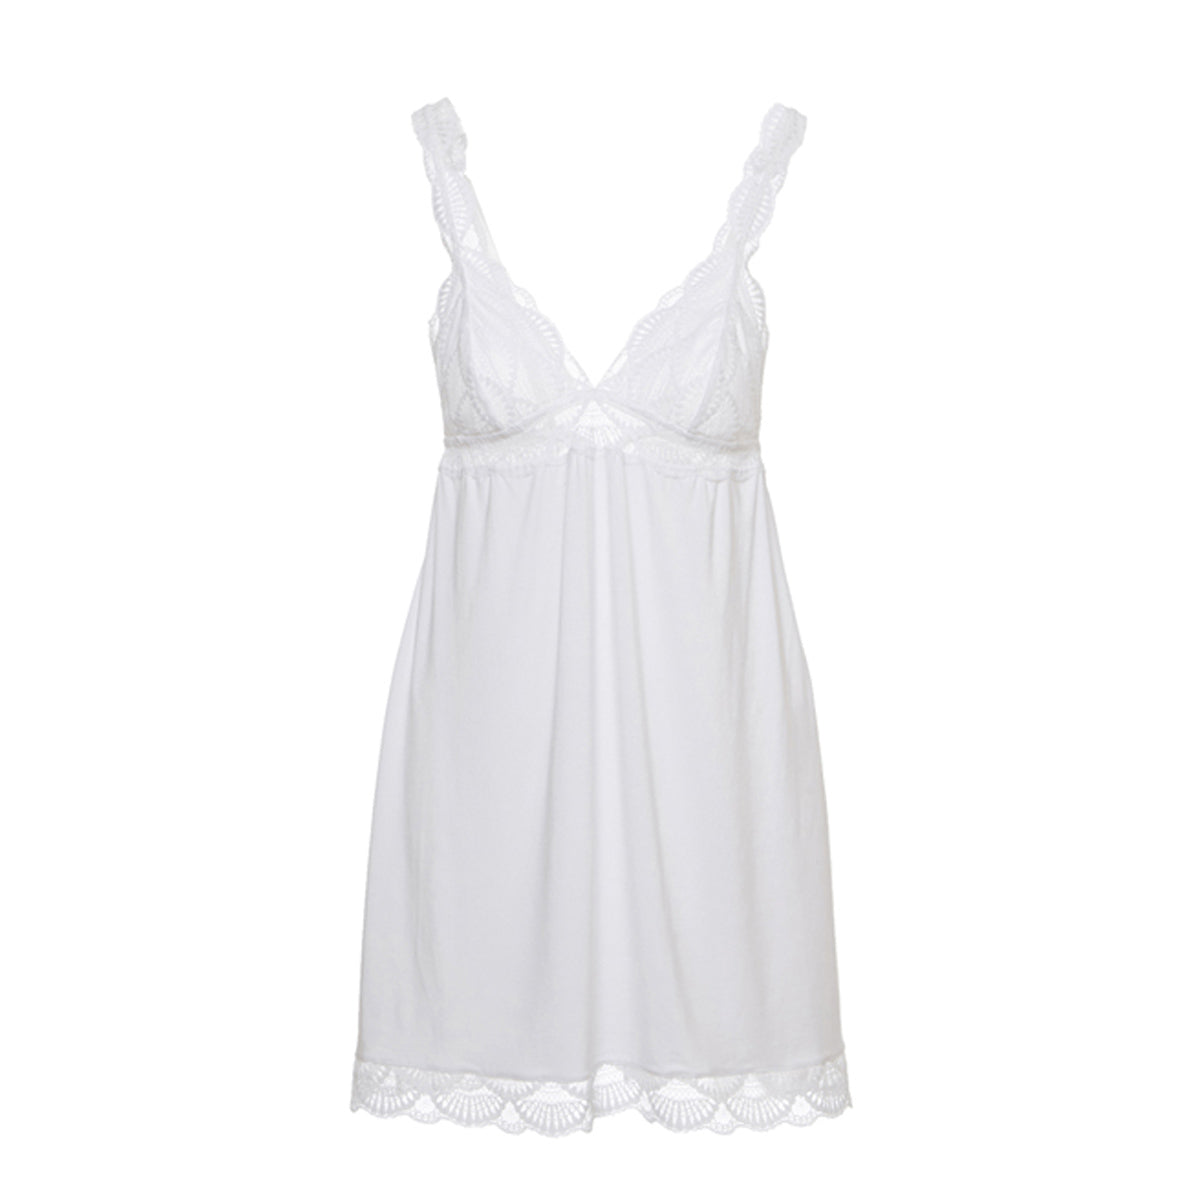 Matilda The Highline Chemise - Eberjey - Evellier